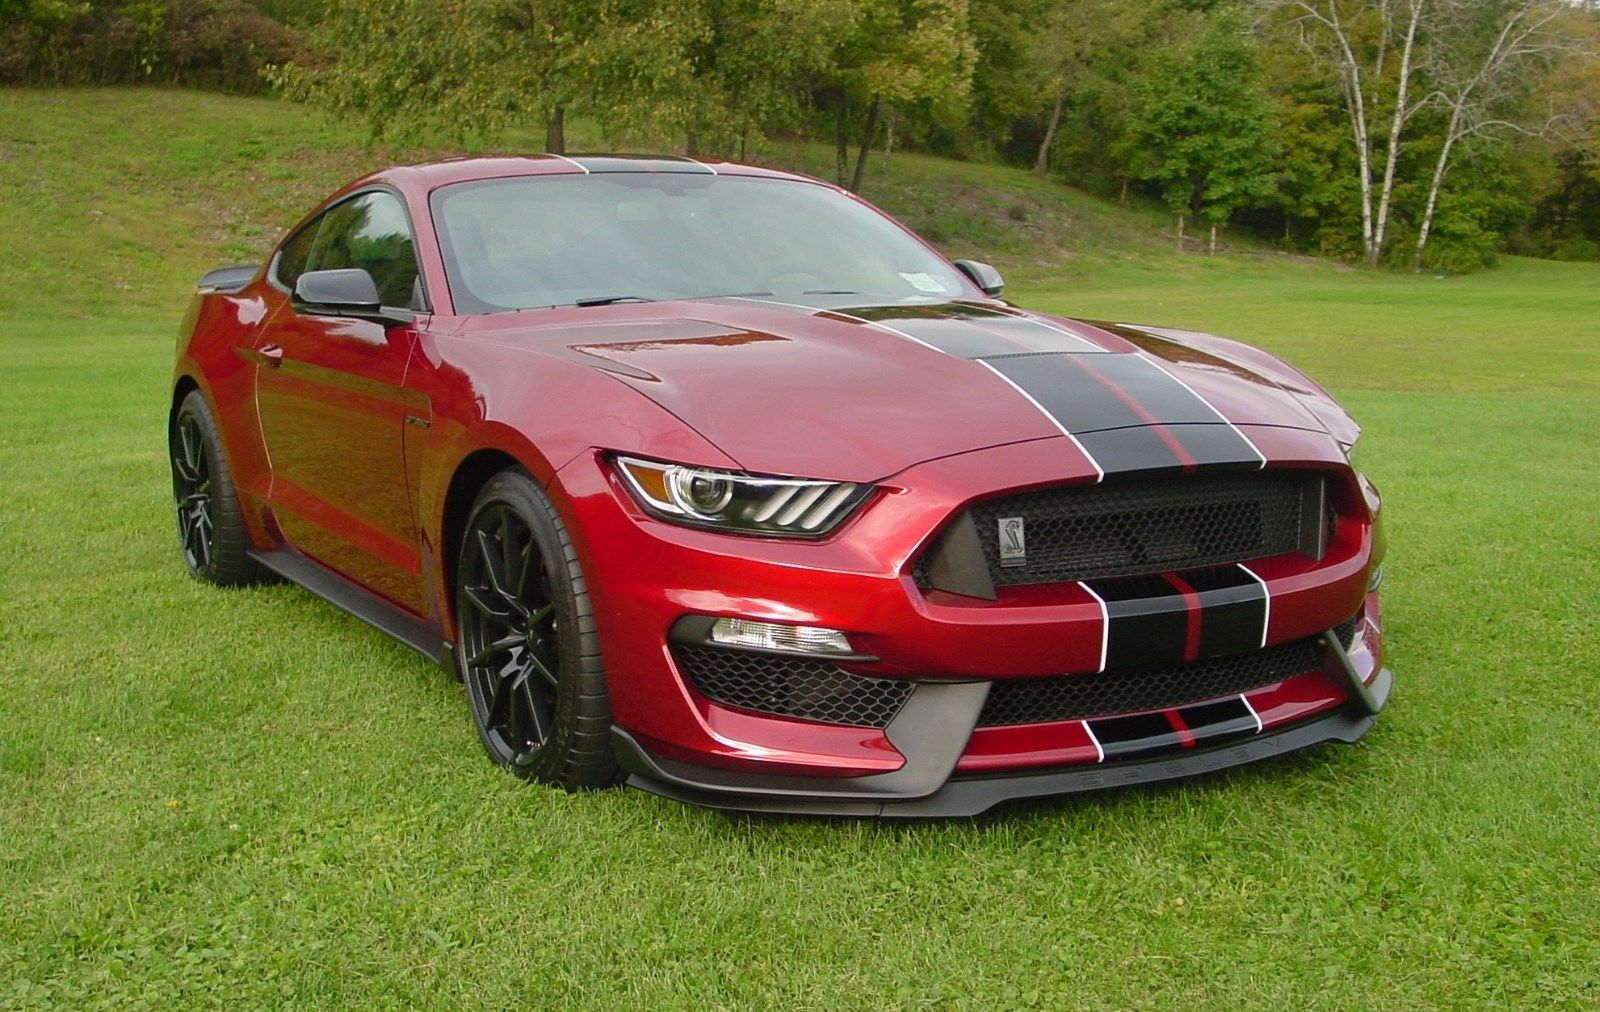 2017 Ford Mustang 2017 Ford Mustang Red Mustang 2017 Shelby Gt350